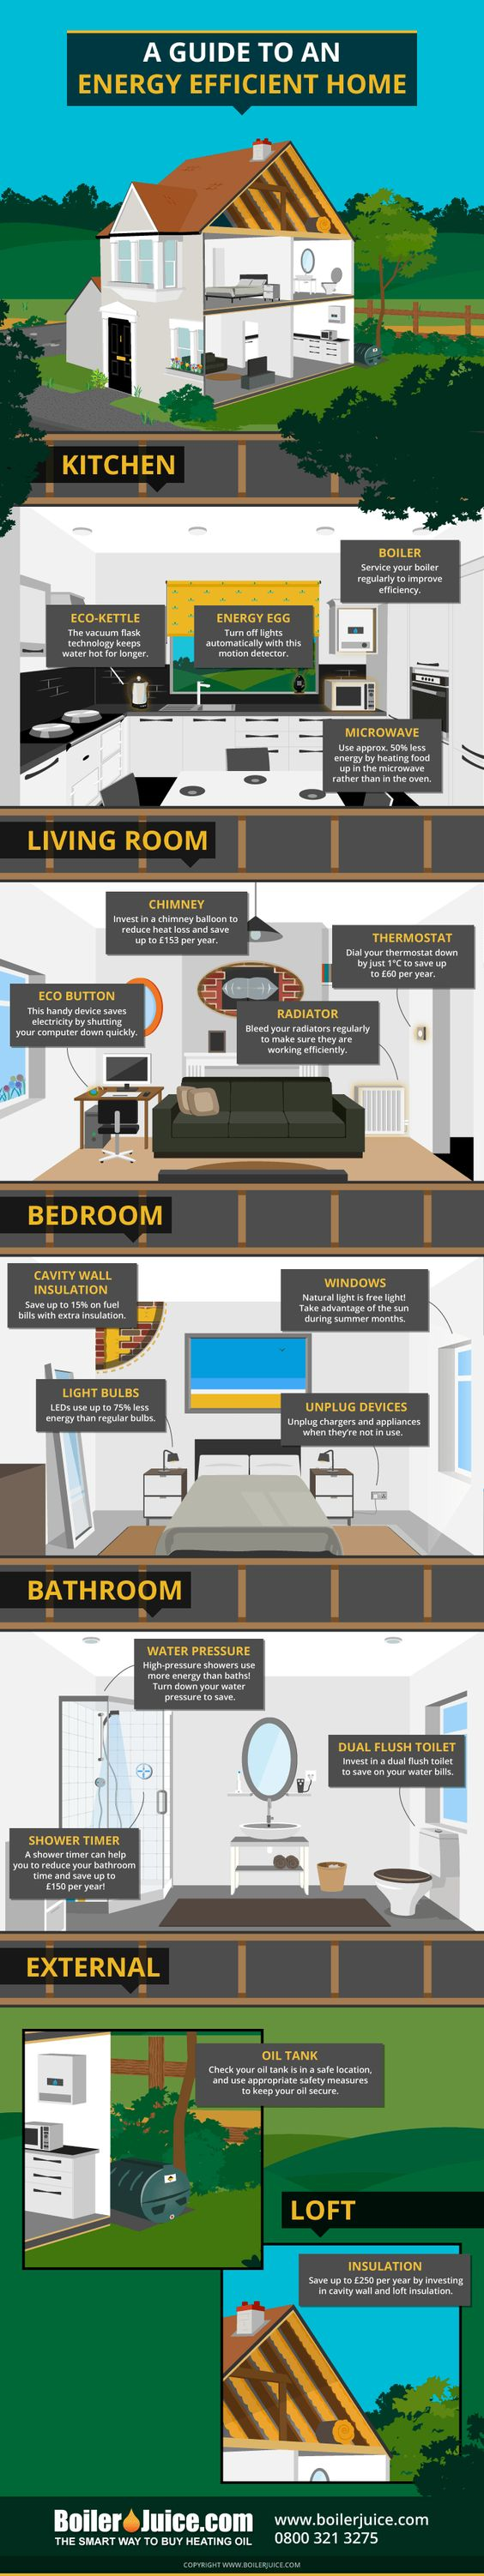 How to have an energy efficient home. Simple adaptations to your home can make it more energy saving, frugal and environmentally sound